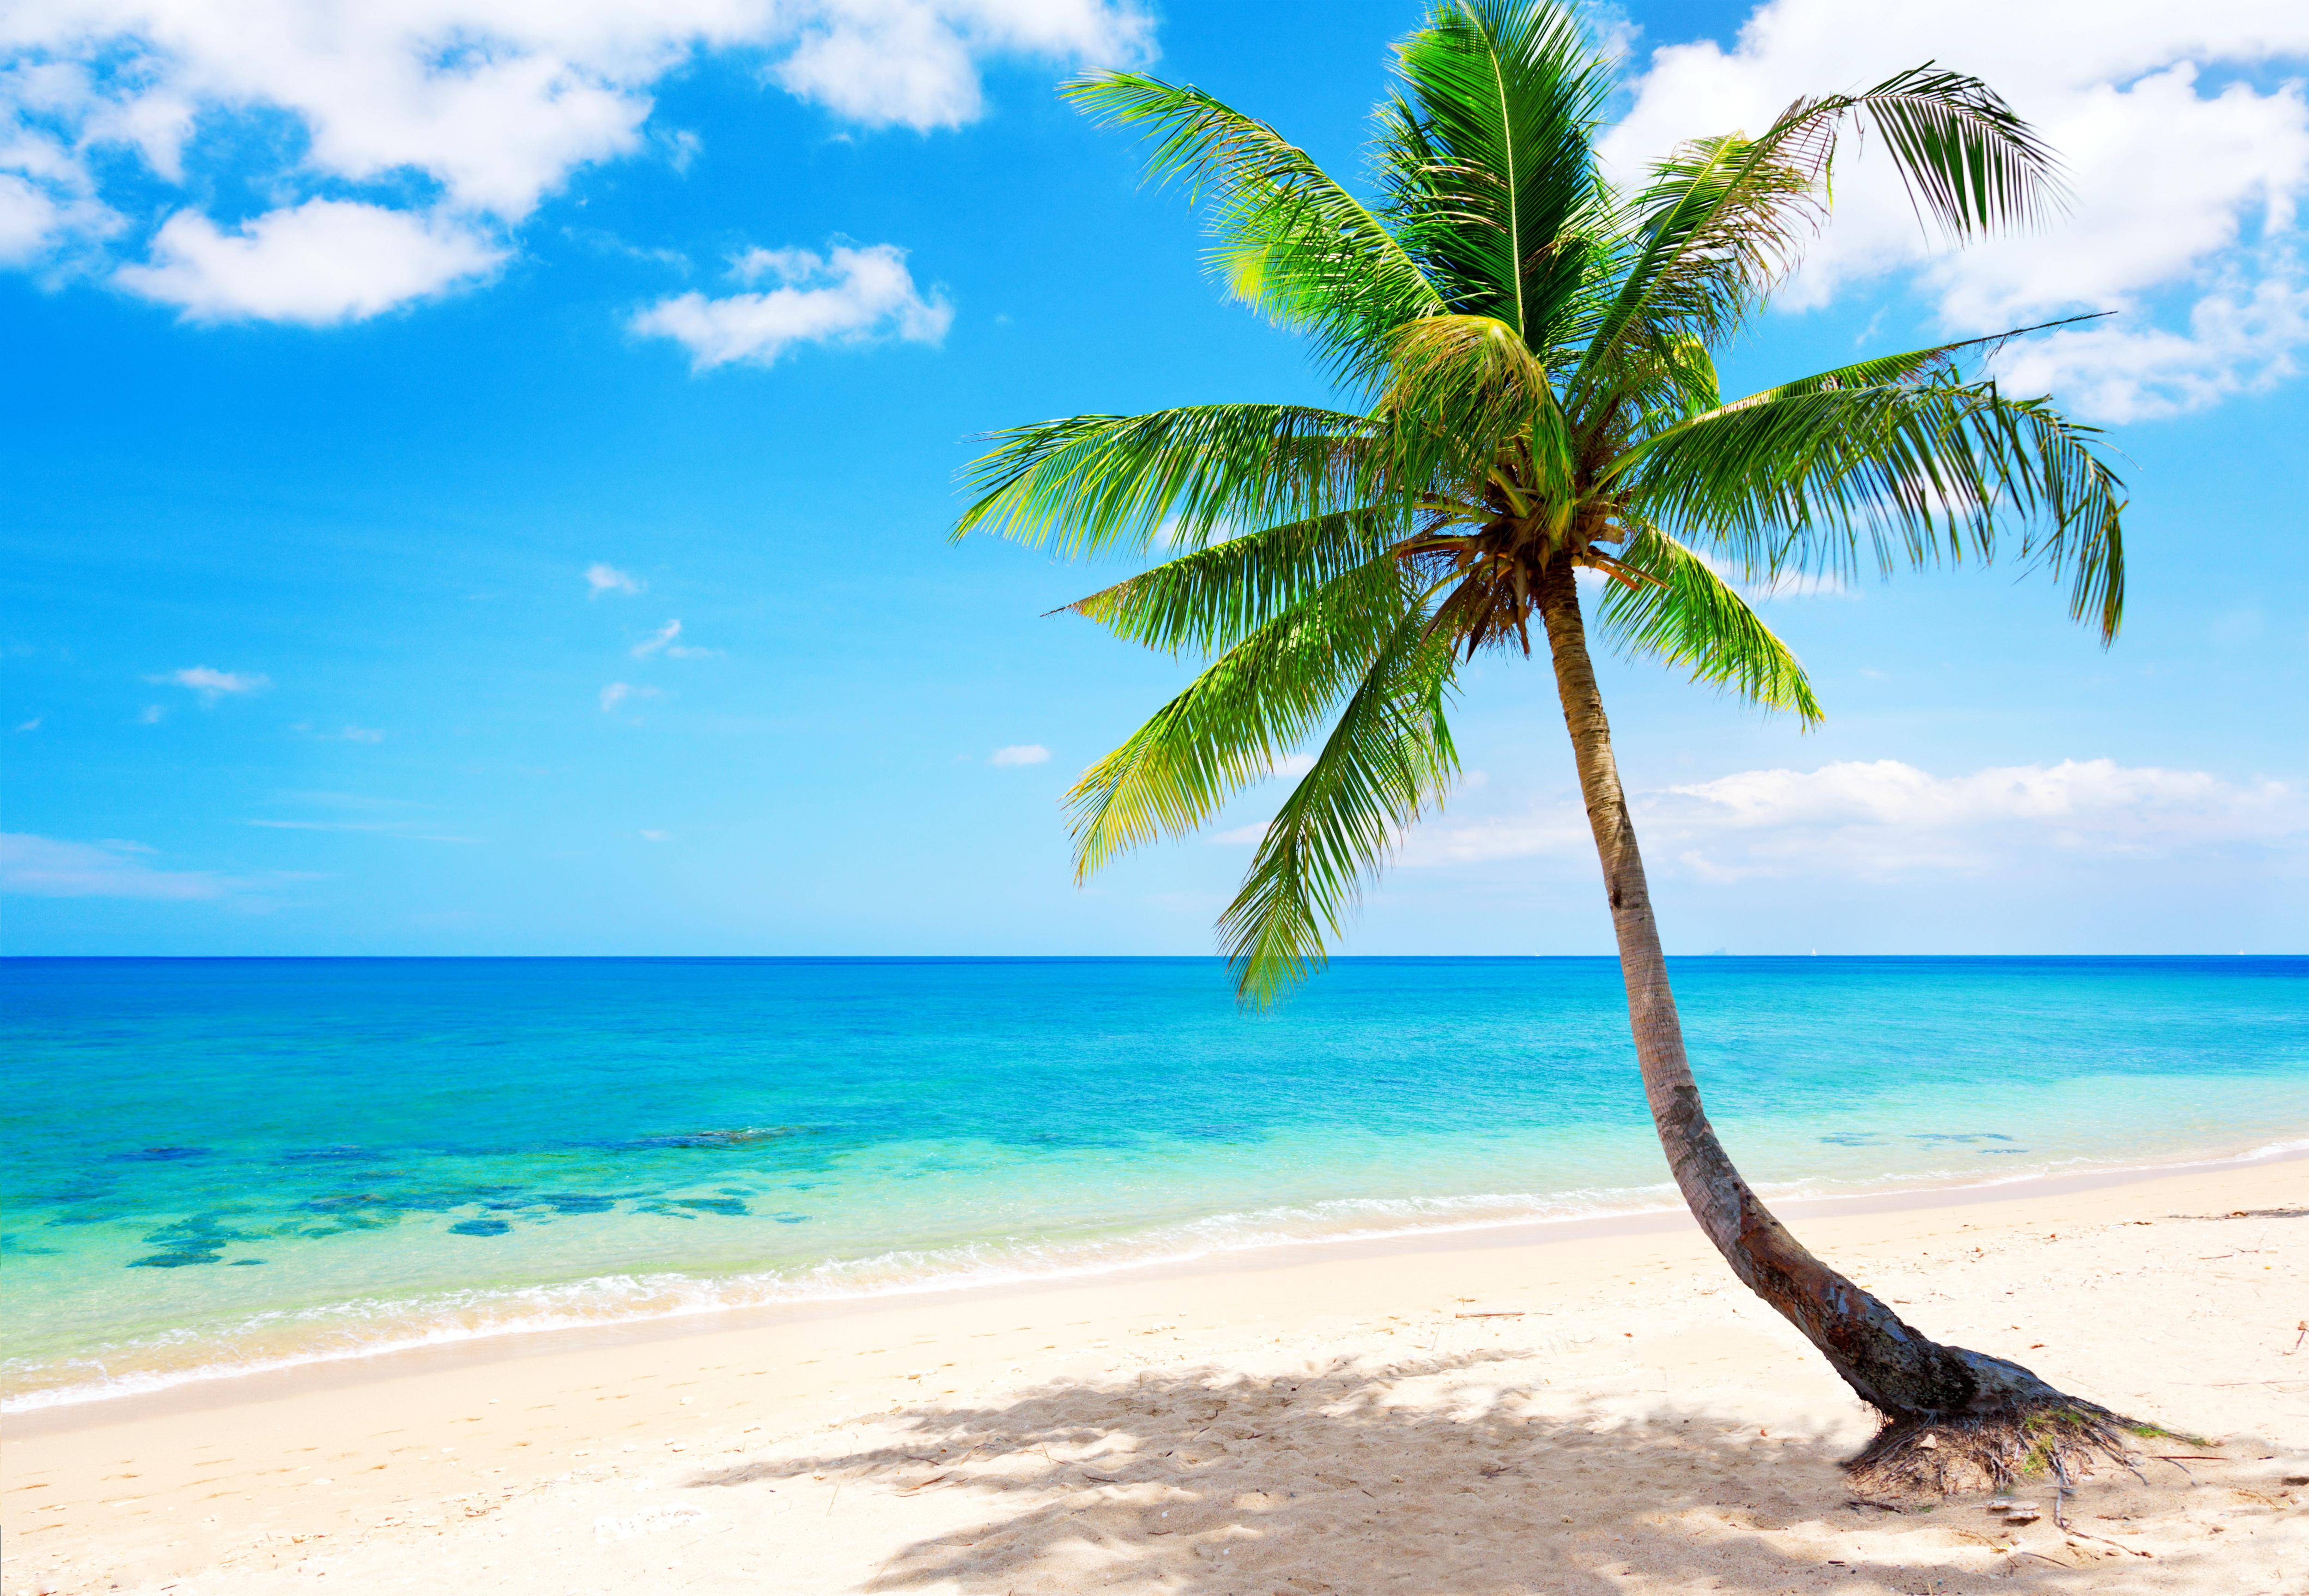 Tropical Beach Wallpapers Pictures Images 5000x3456